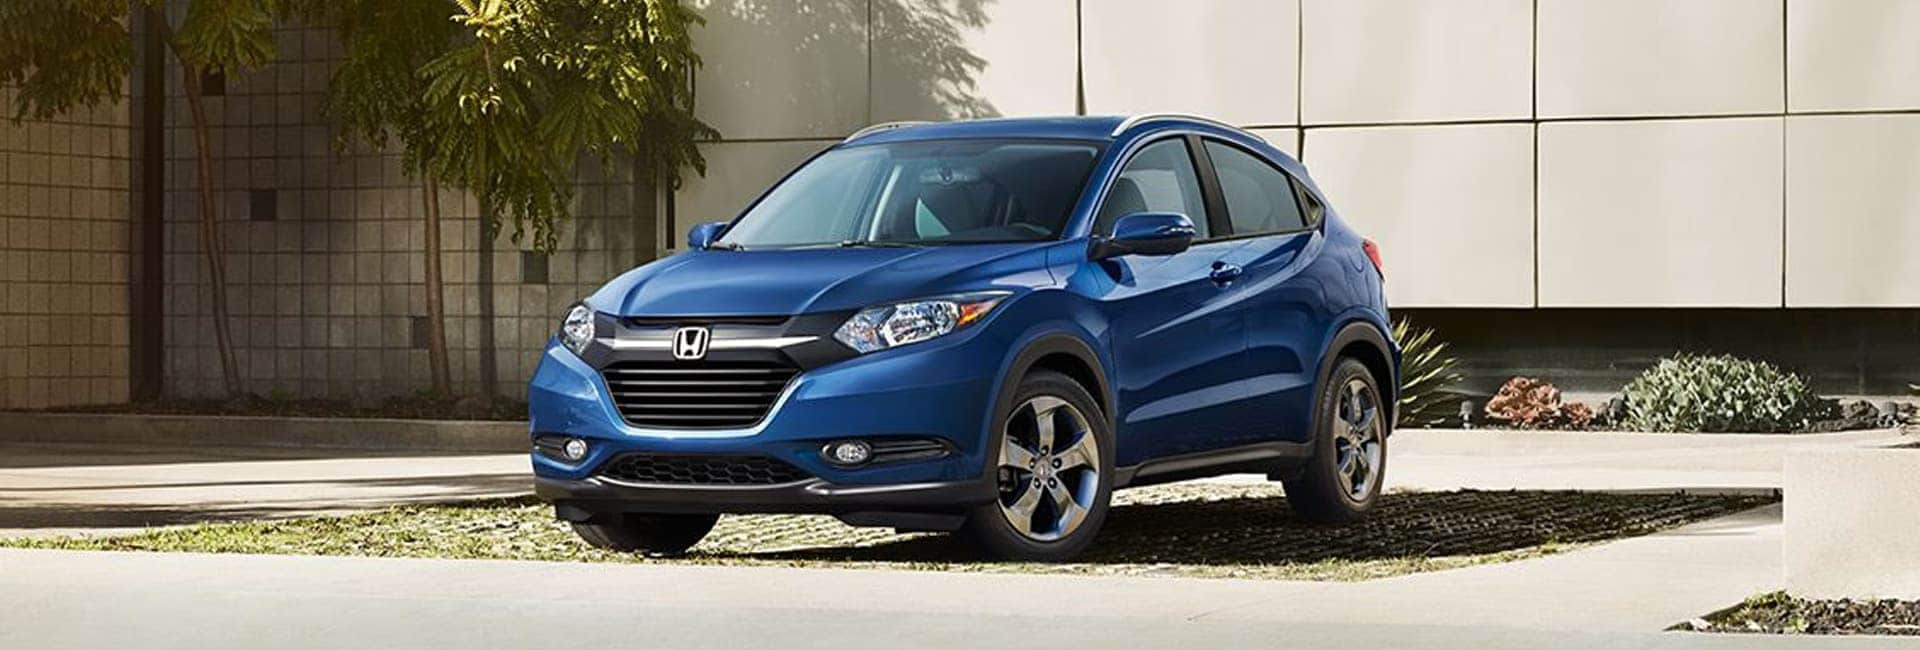 Honda HR-V Exterior Vehicle Features